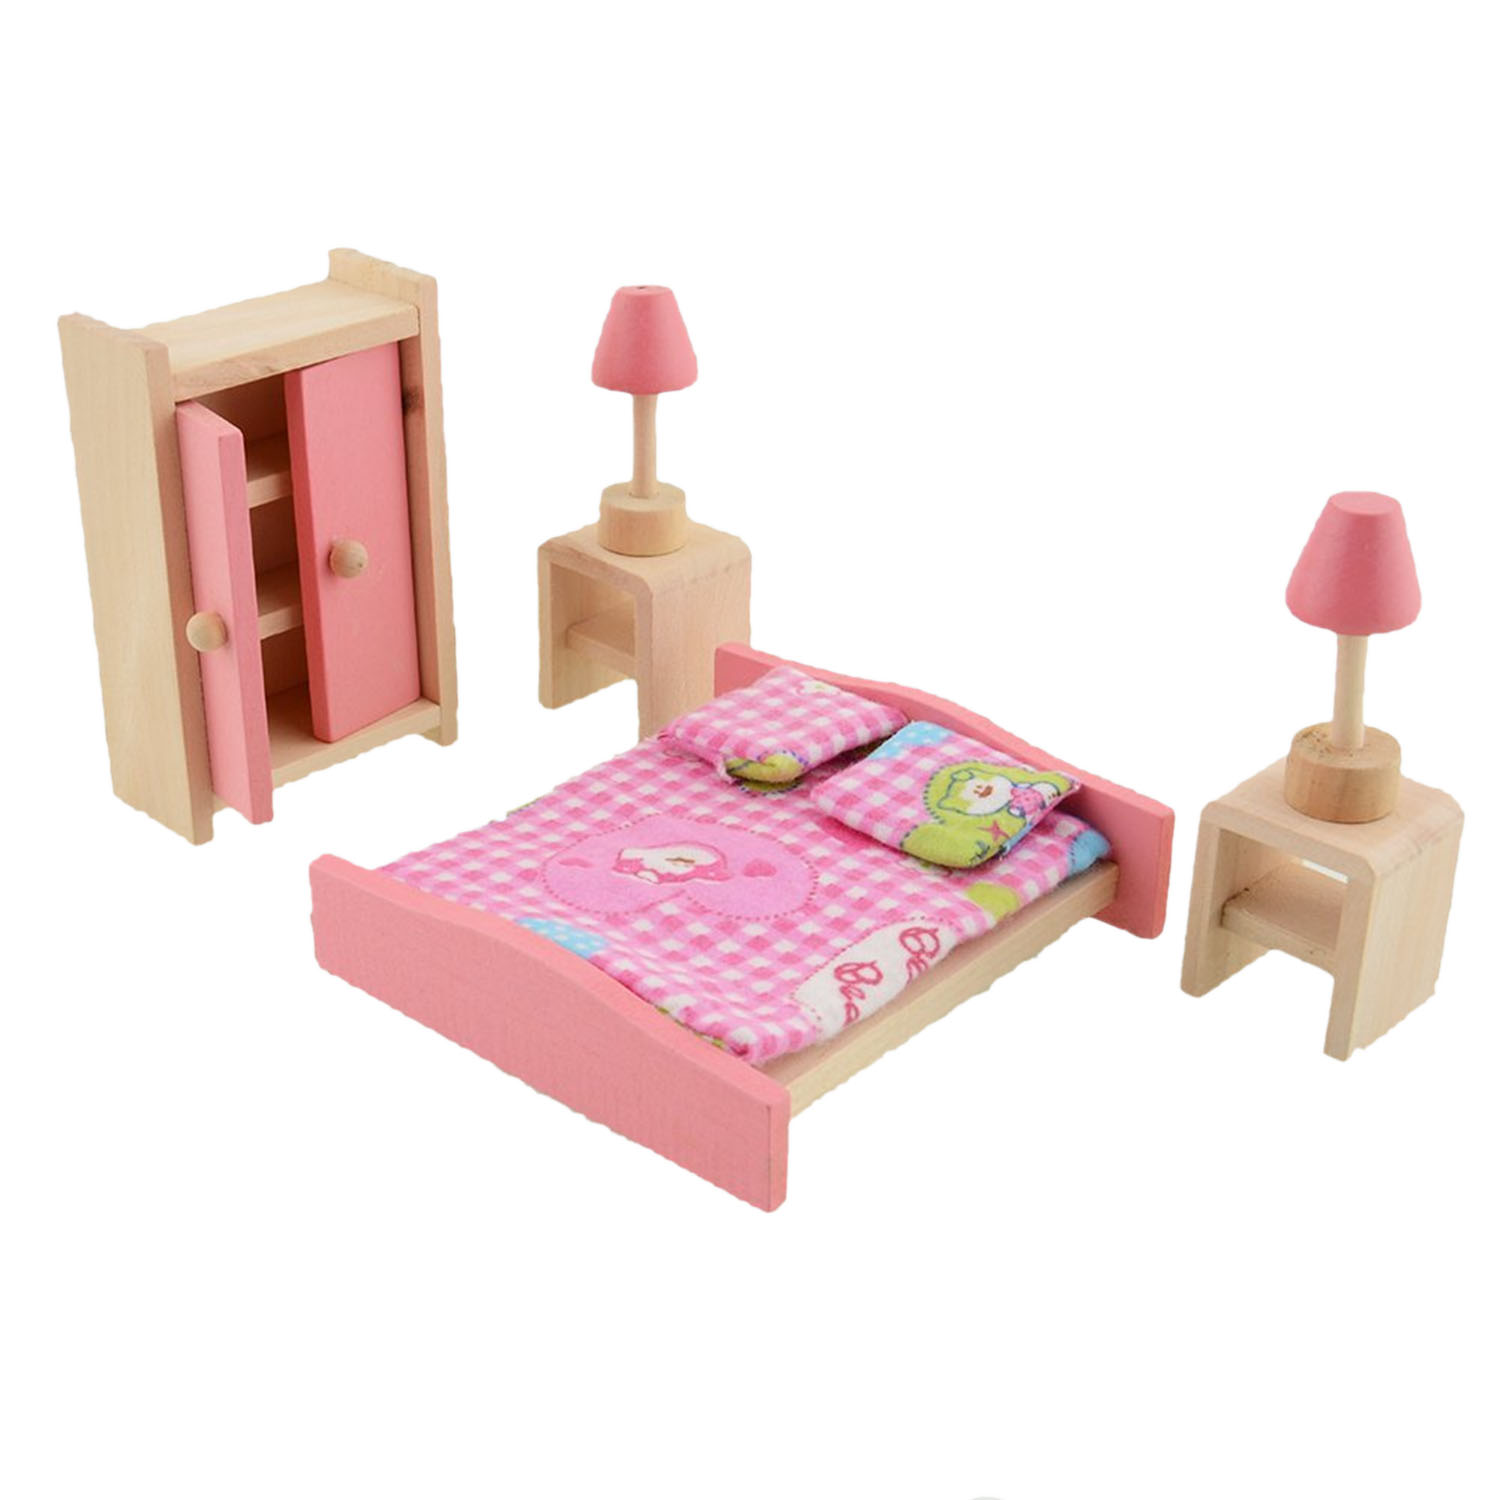 6 Assorted Of Wooden Miniature Dollhouse Furniture Diy Mini Wood Doll House Kitchen Cabinets Bed Bathroom Living Room Doll Toy